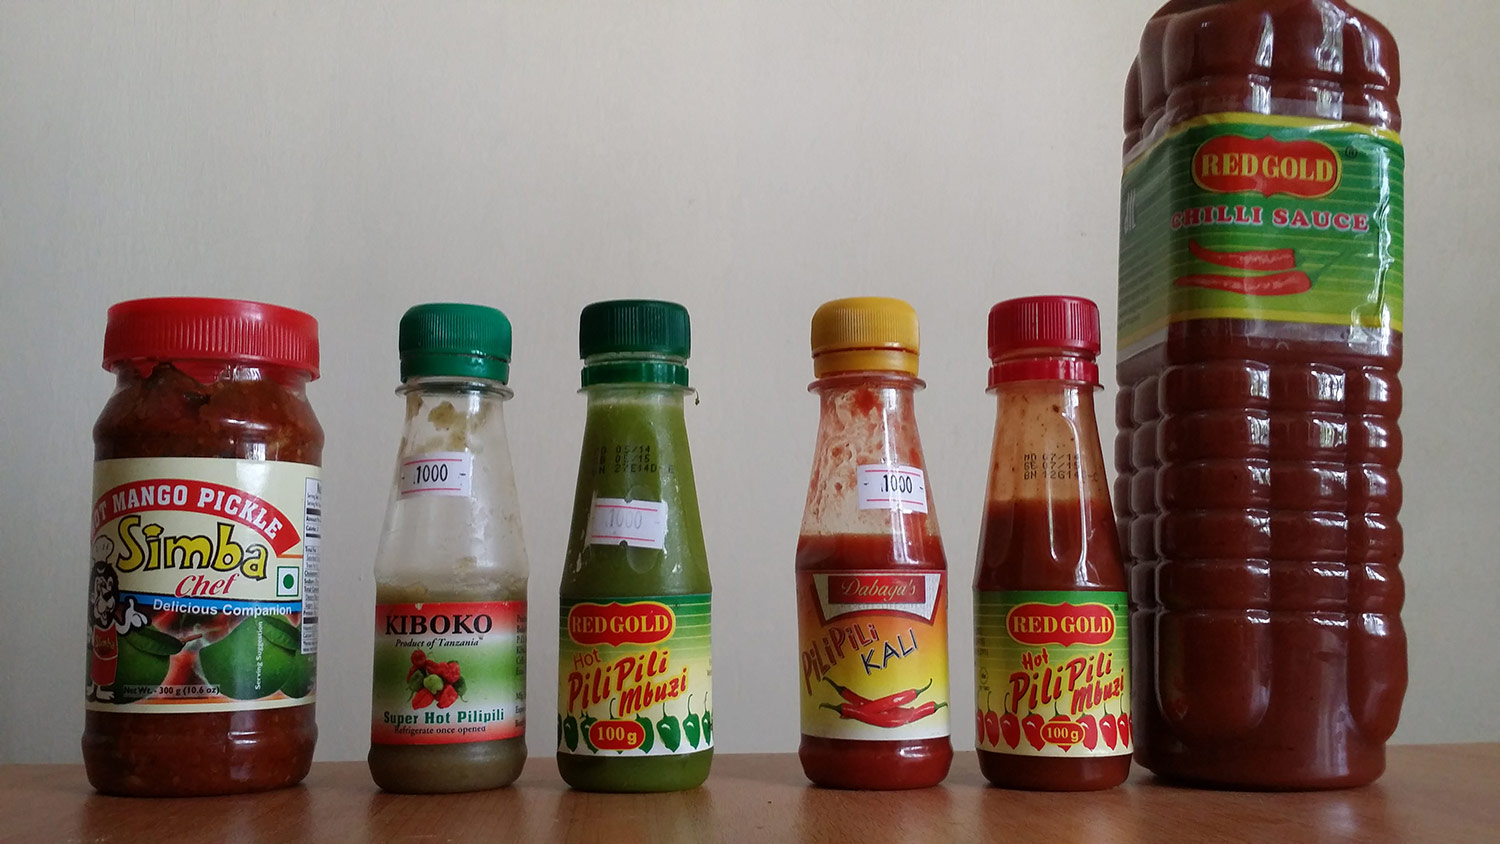 hot pili pili sauce marobert s pili pili hot sauce global table ...